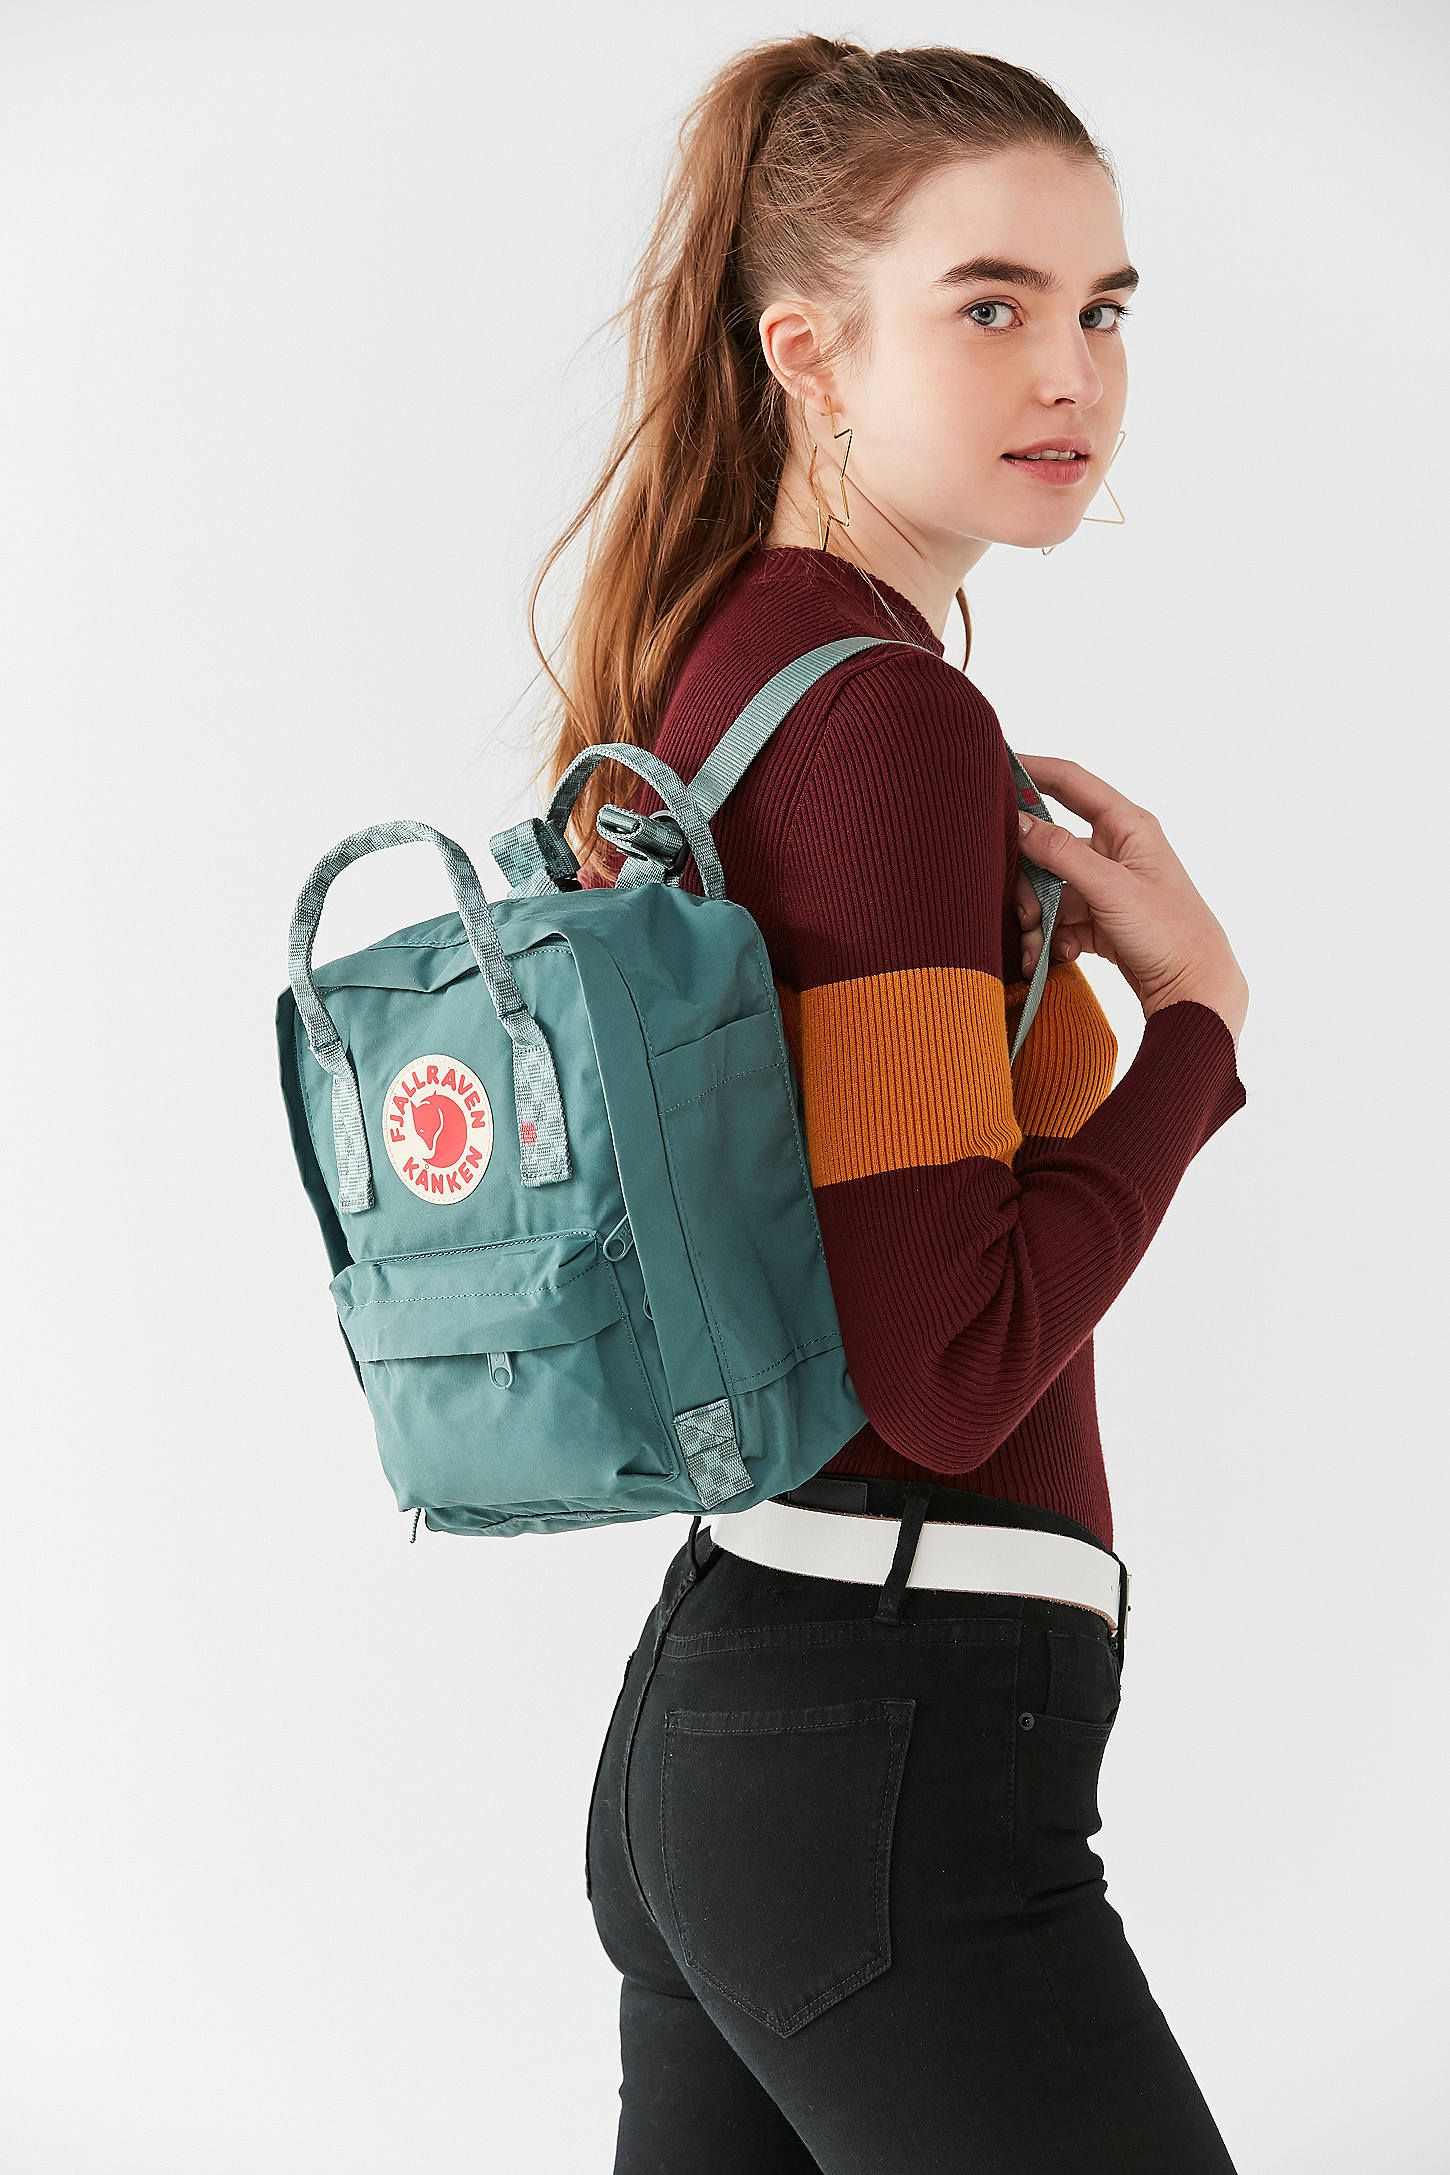 704a97fabdb9 Shop Fjallraven Kanken Mini Backpack at Urban Outfitters today. We carry  all the latest styles